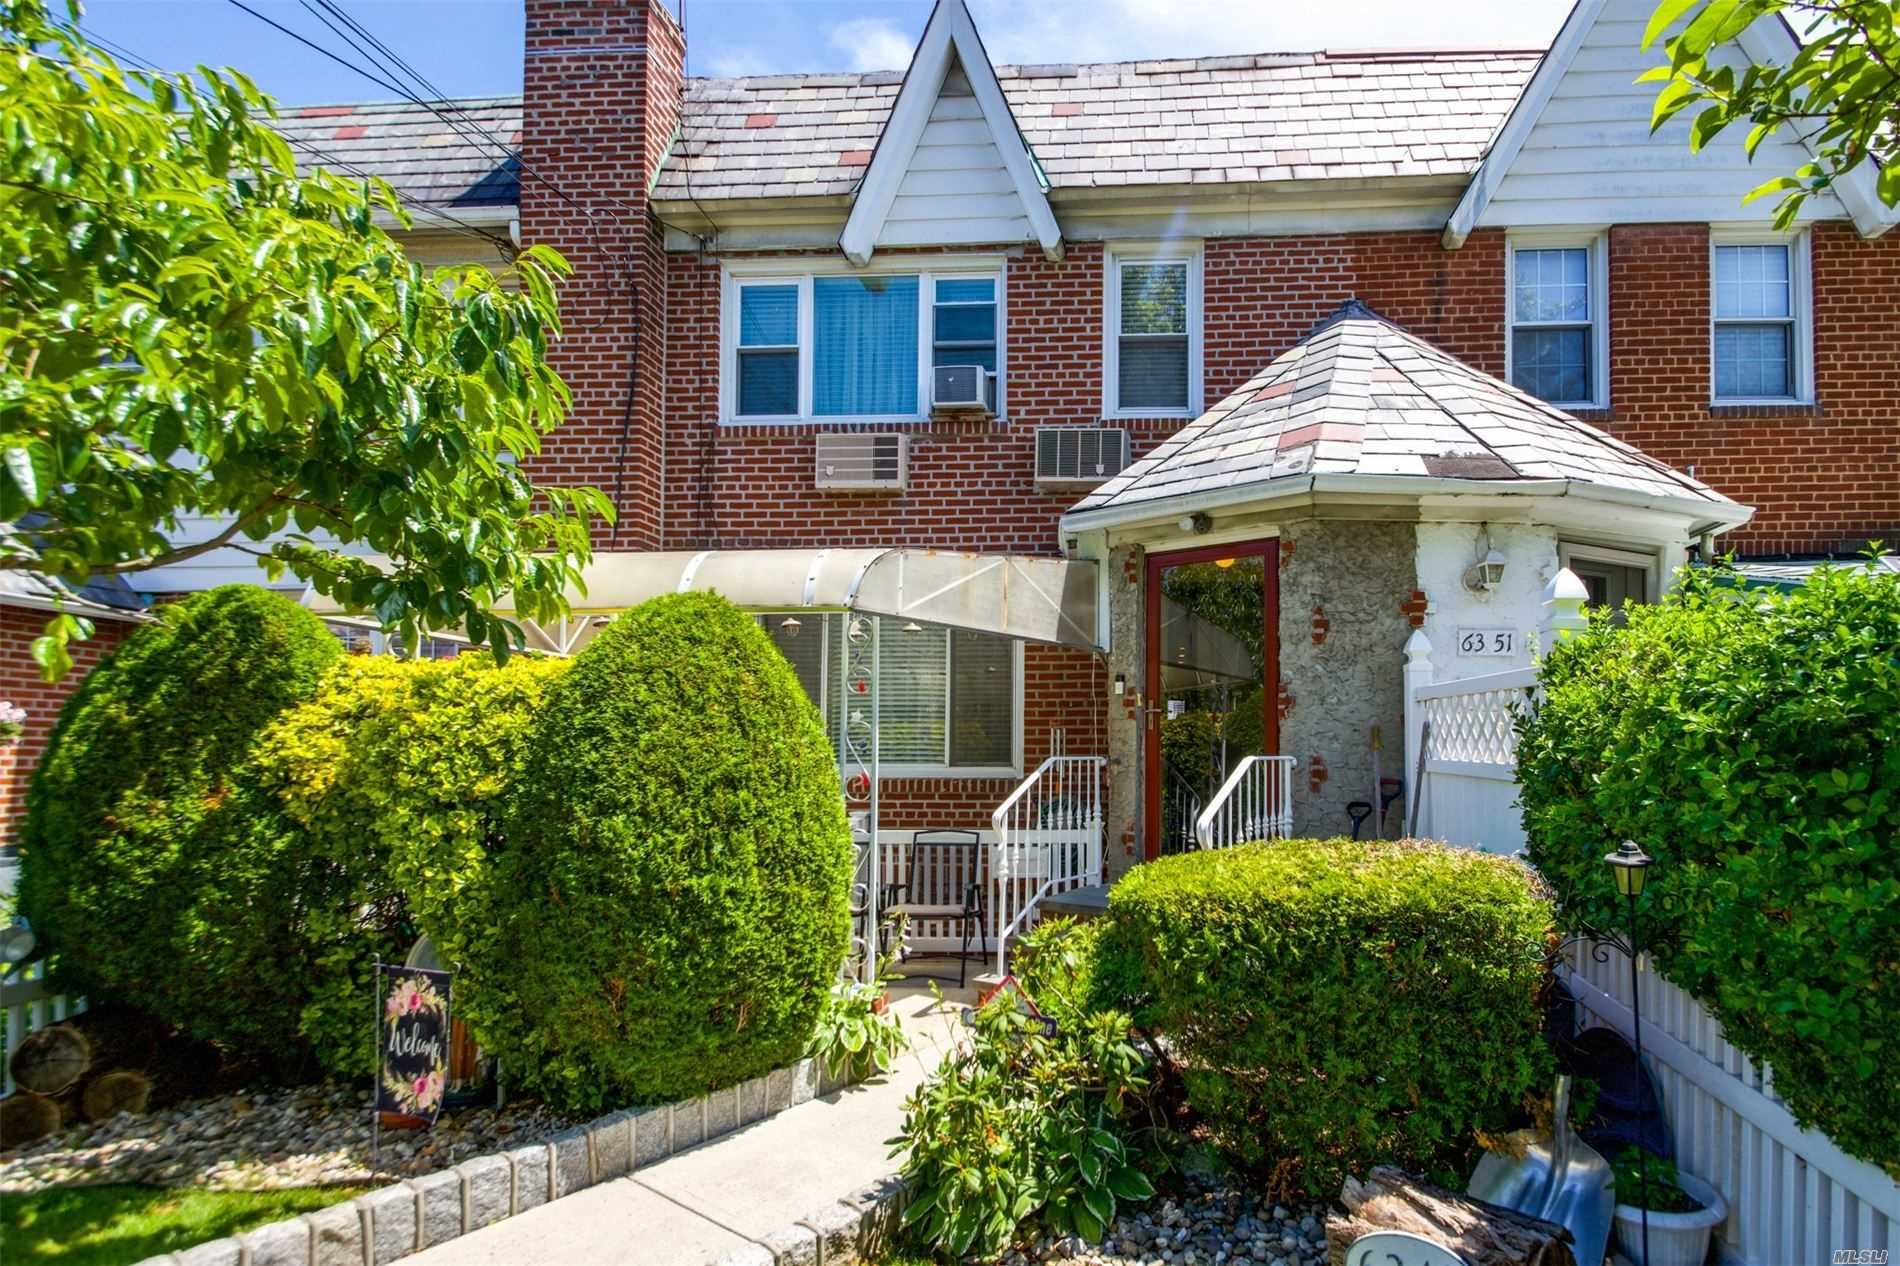 63-49 83 Place, Middle Village, NY 11379 - MLS#: 3229083